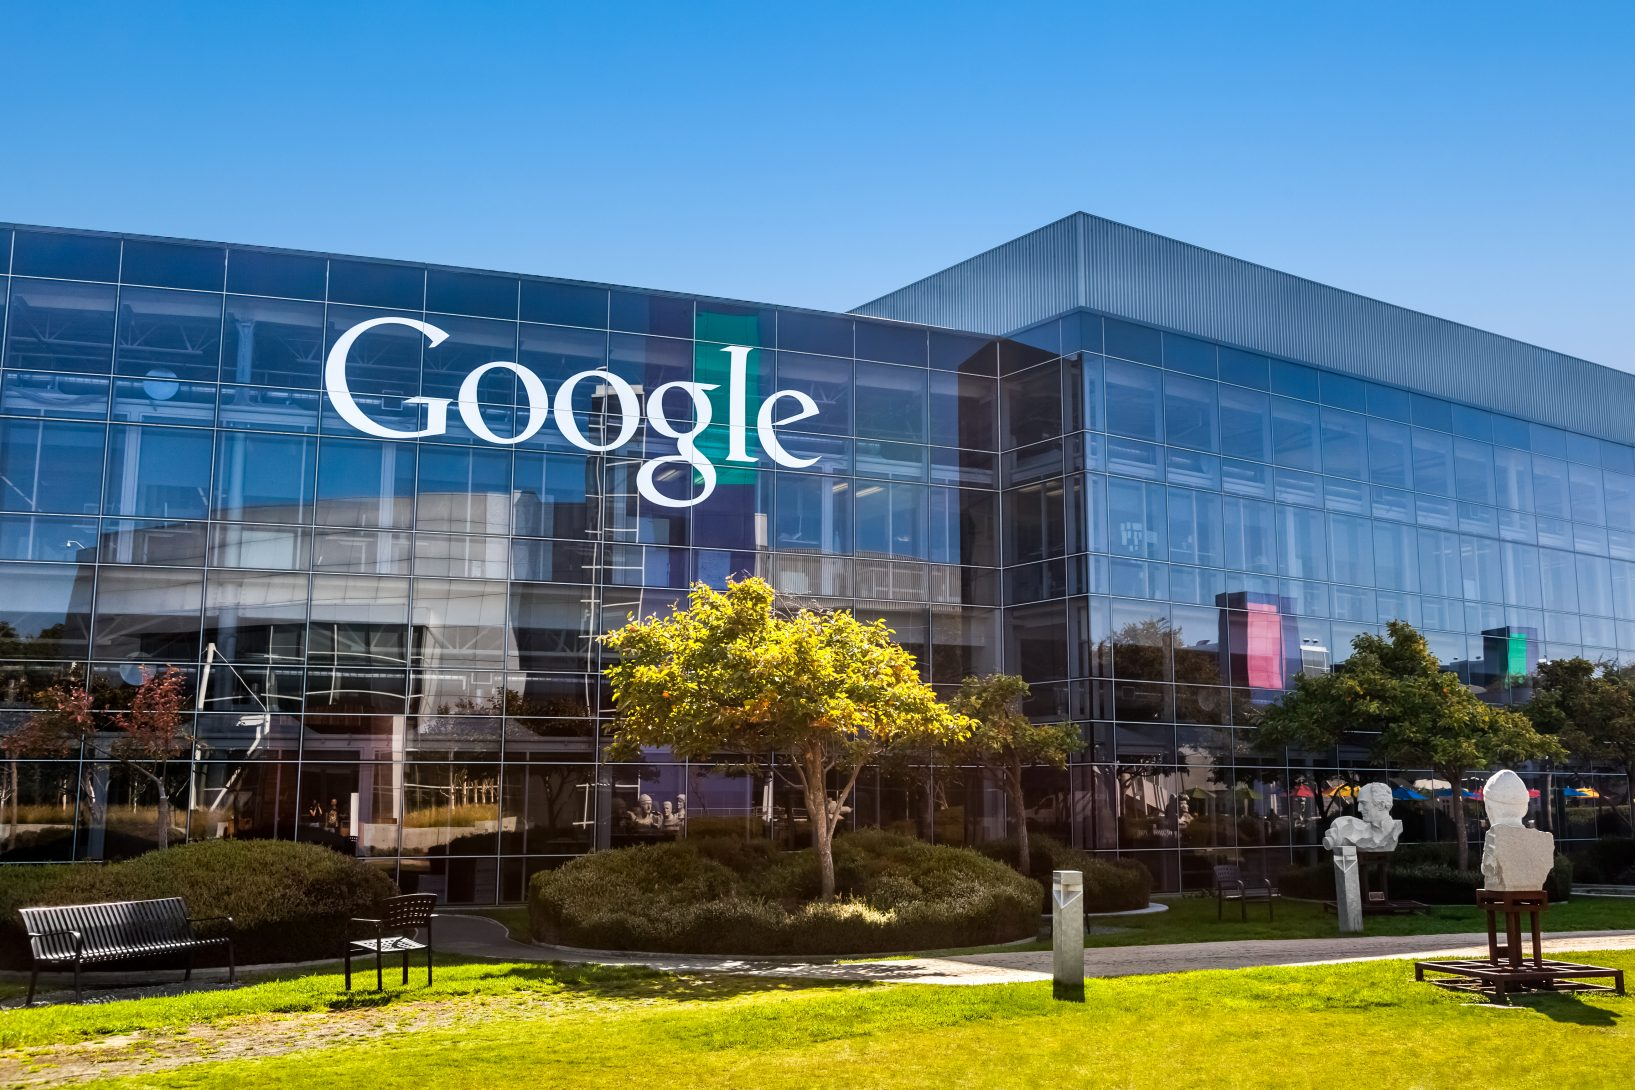 Google+ To Shut Down After User Data Coverup Is Exposed